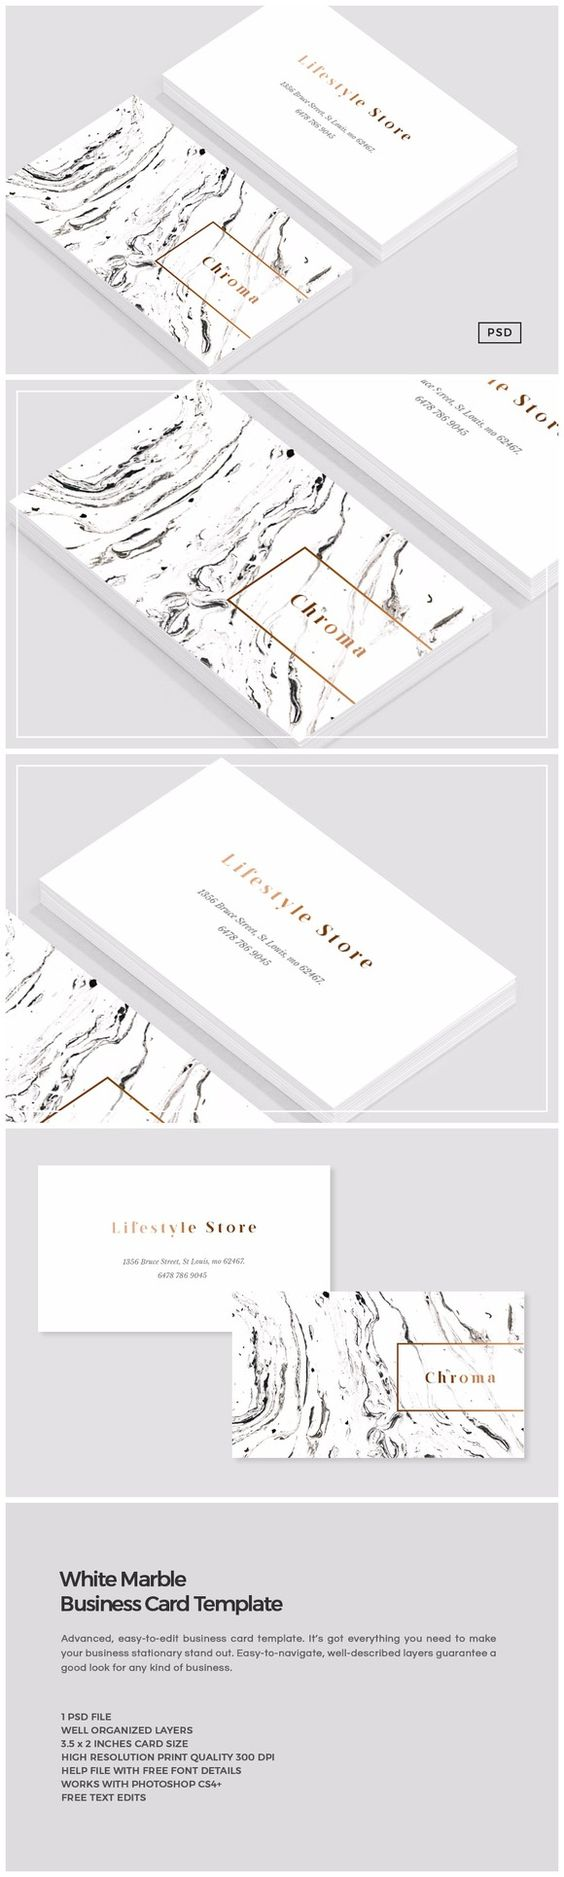 White Marble + Copper Business Card https://creativemarket.com/MeeraG/808246-White-Marble-Copper-Business-Card #design #art #graphicdesign